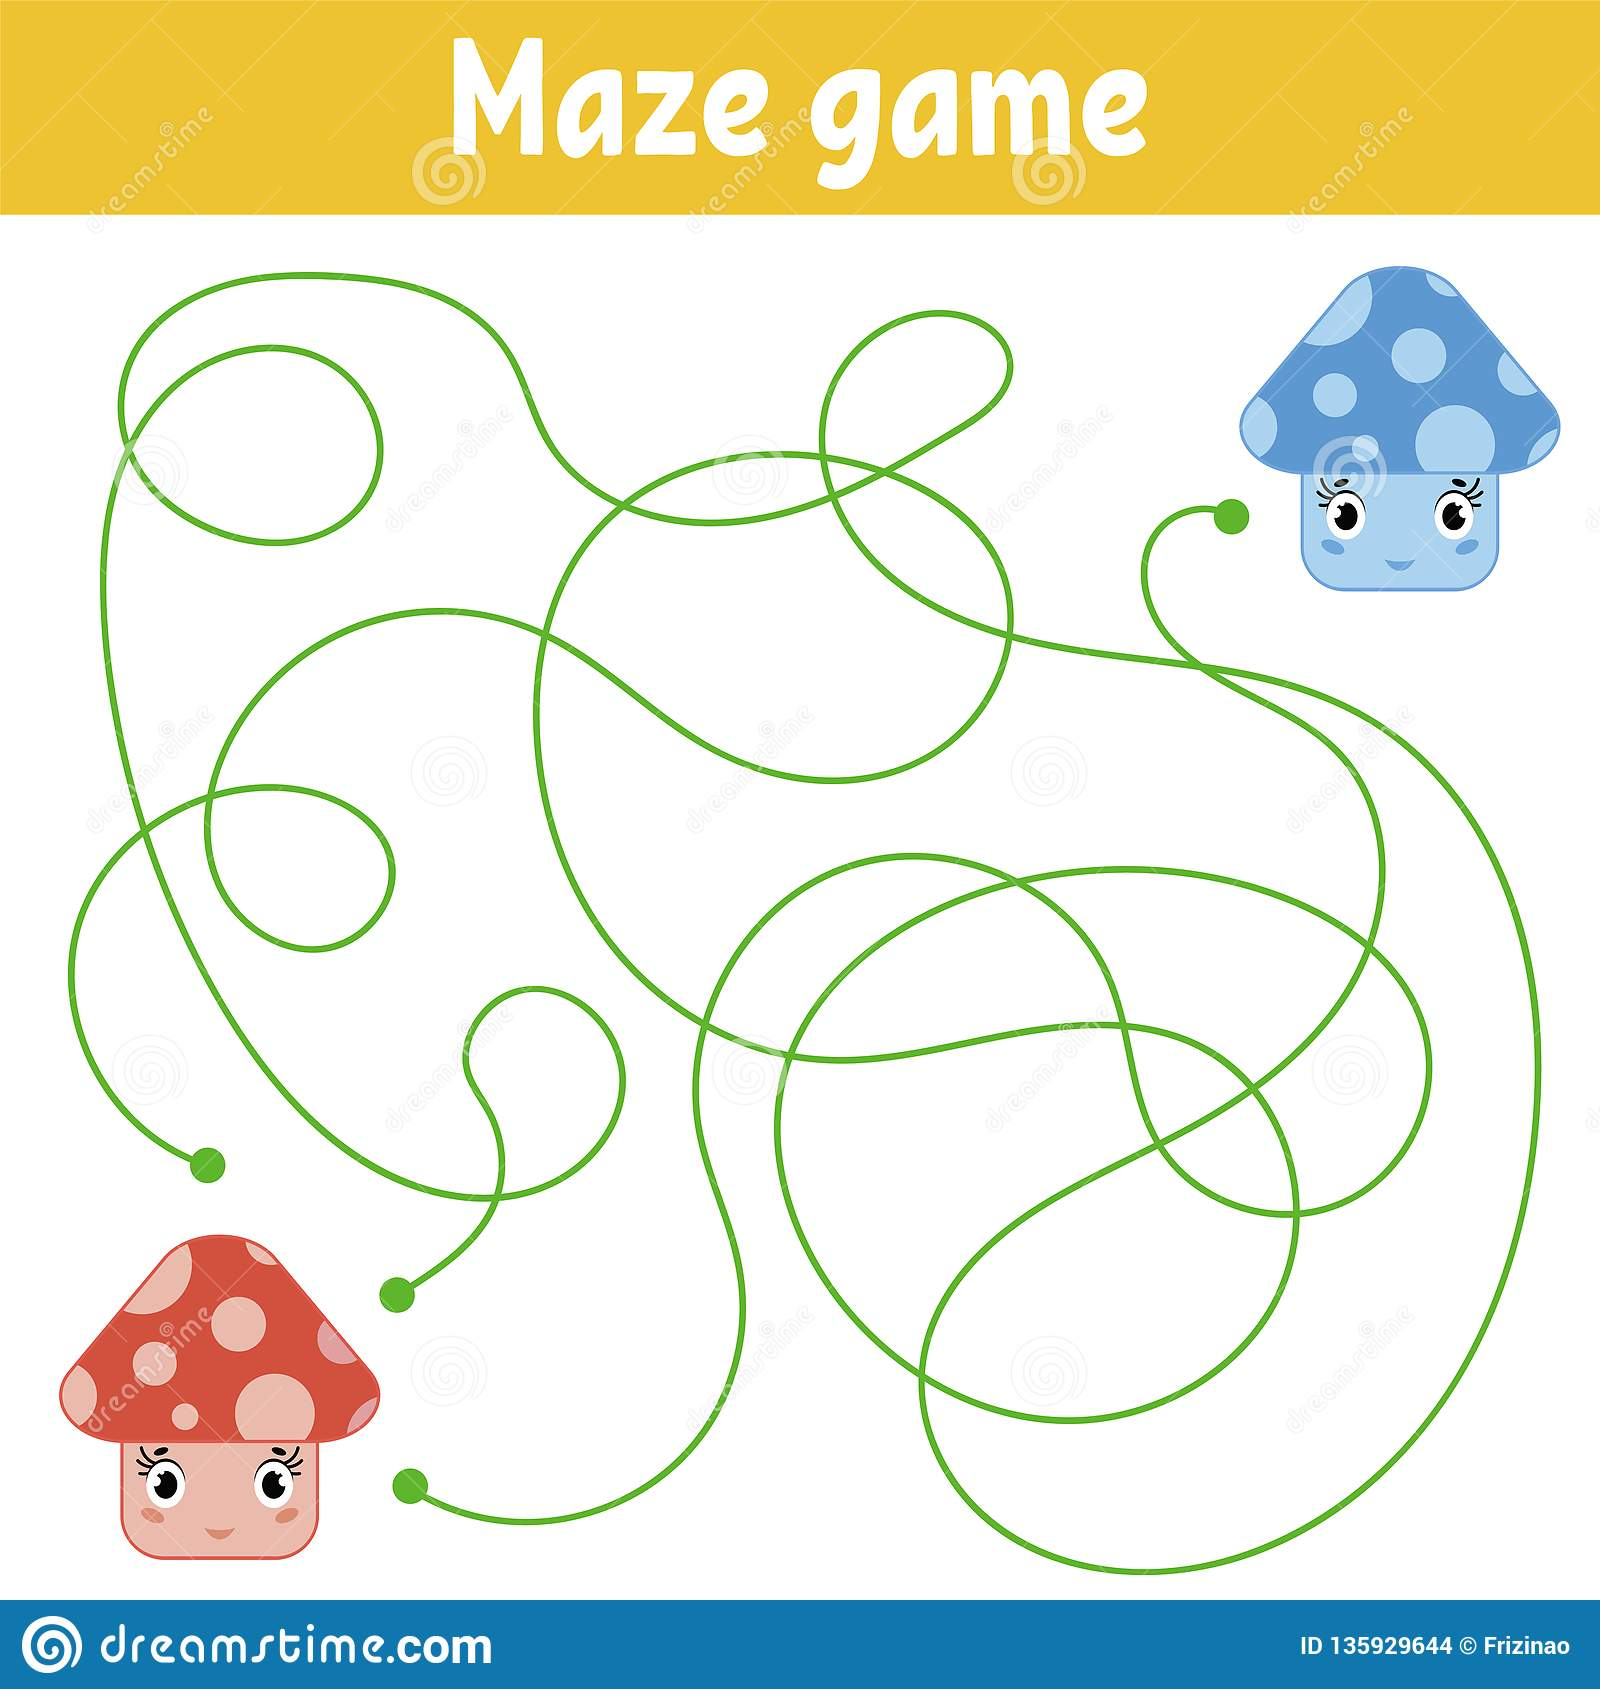 Color Abstract Maze Help The Red Mushroom To Reach The